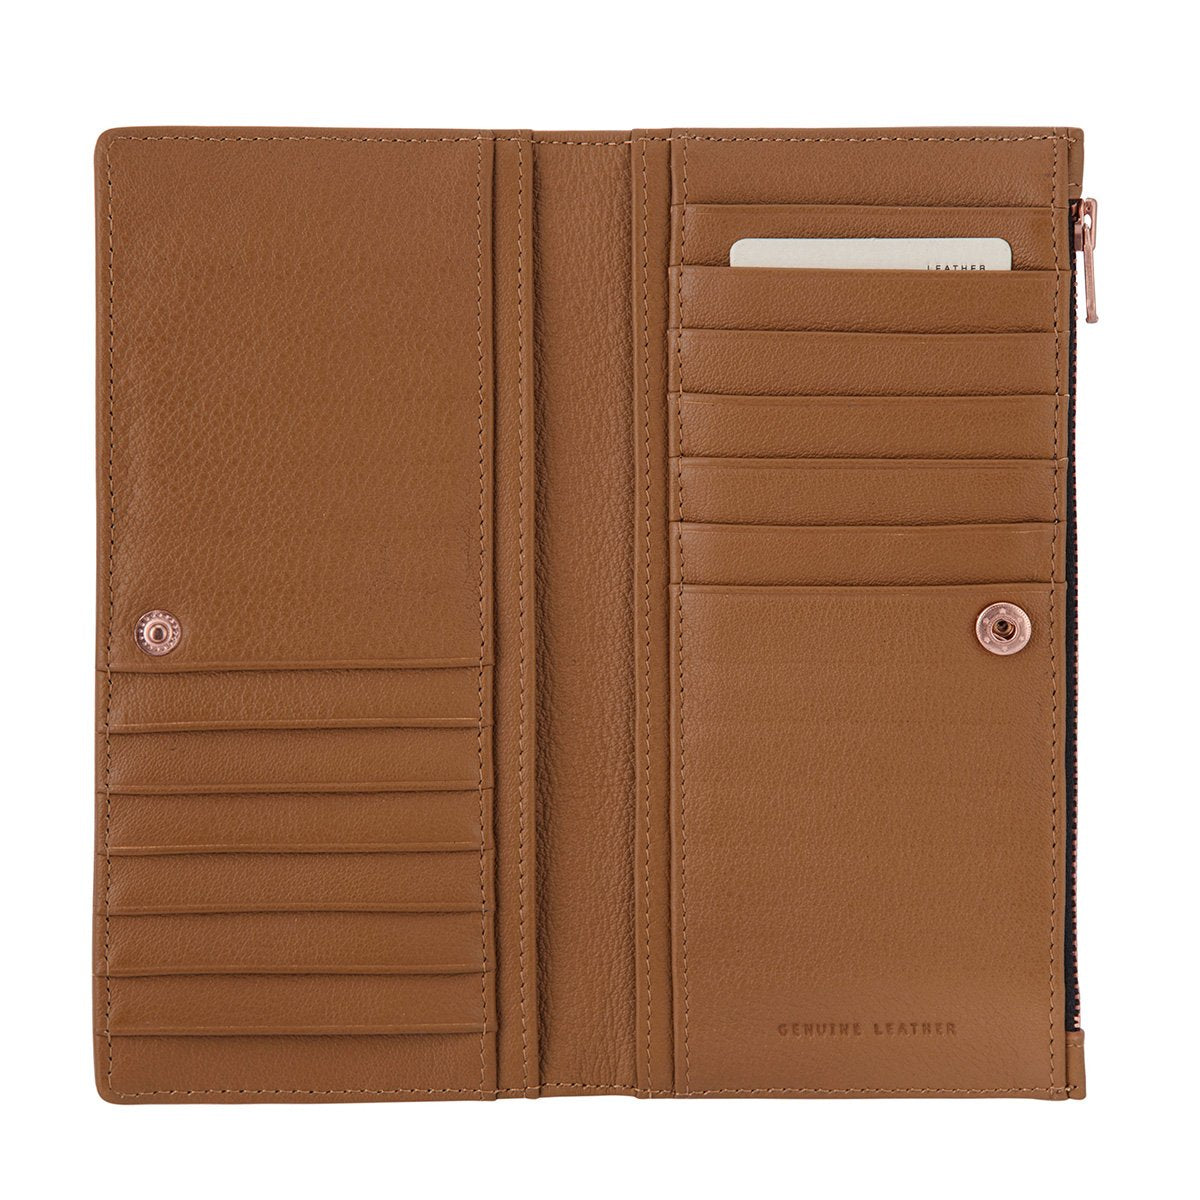 In The Beginning Wallet Tan Leather NZ